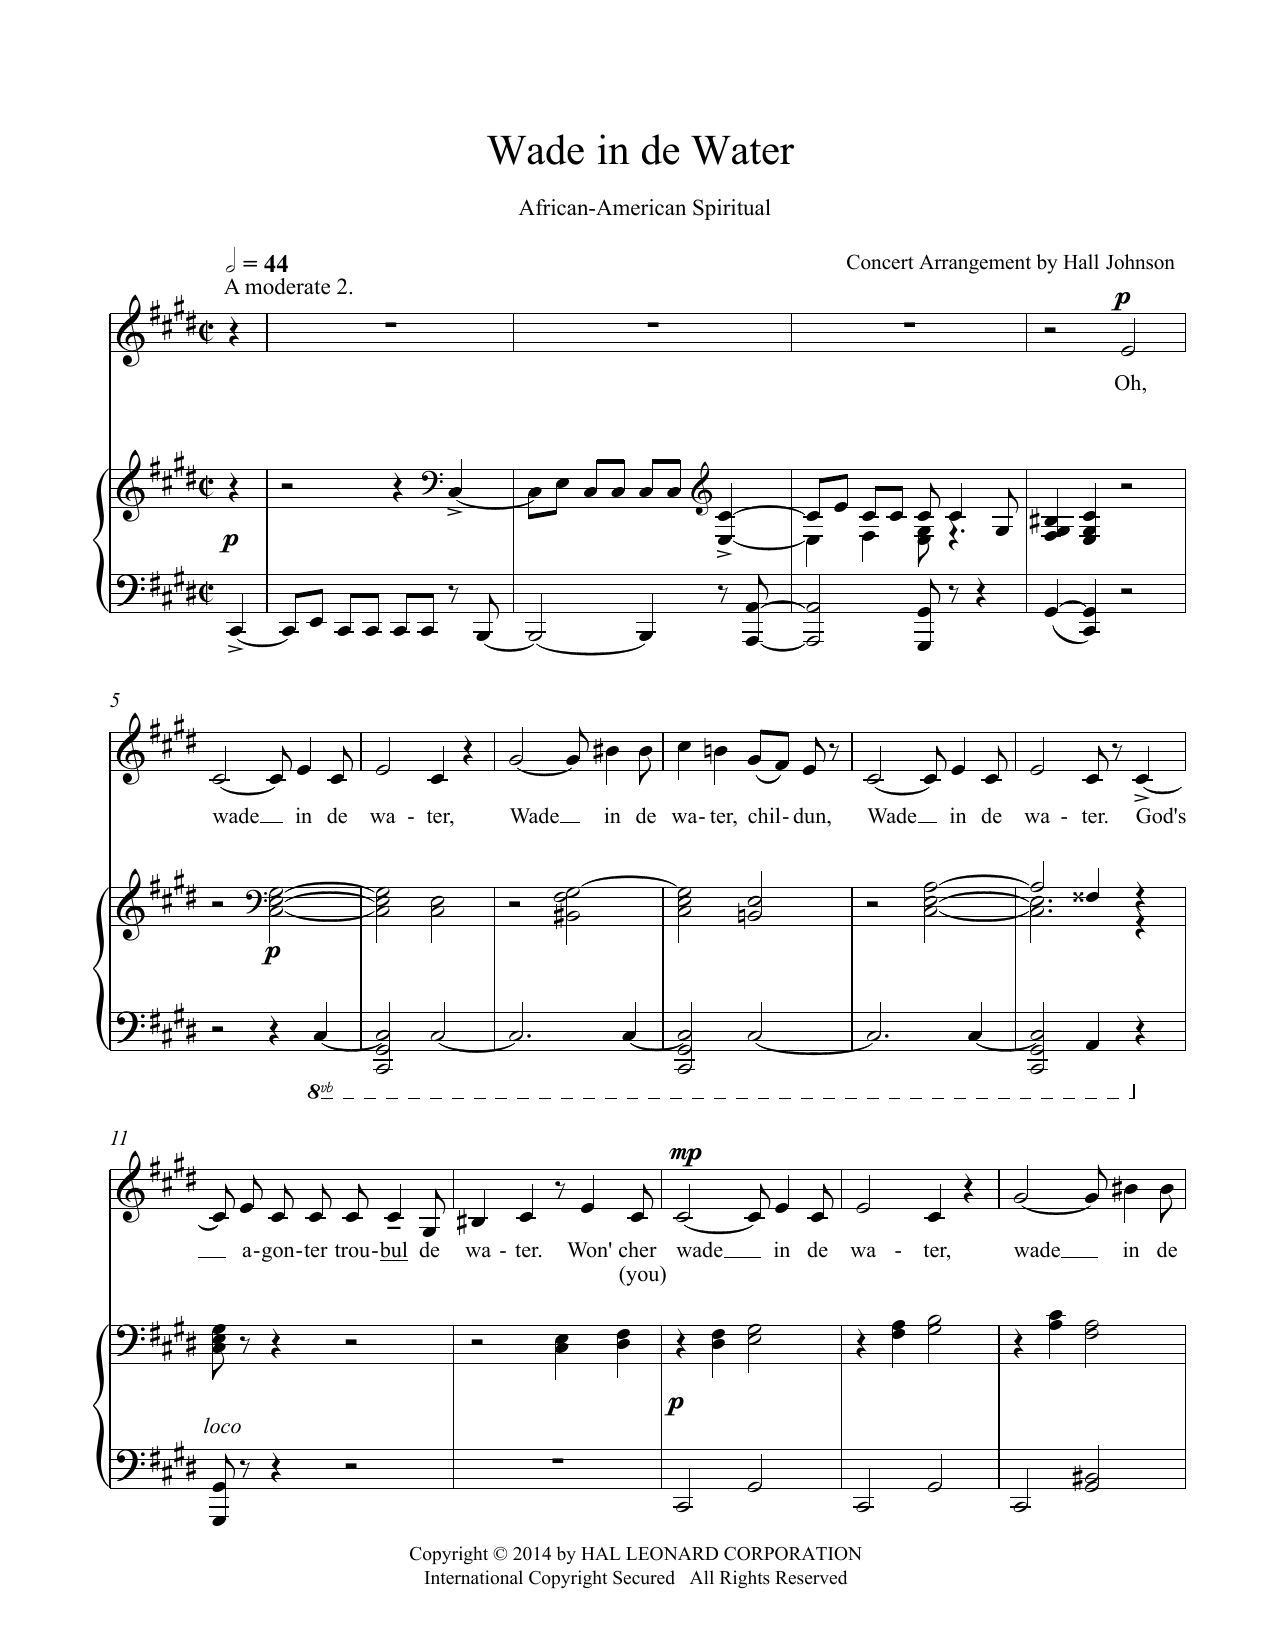 Wade in de Water (C-sharp minor) Sheet Music